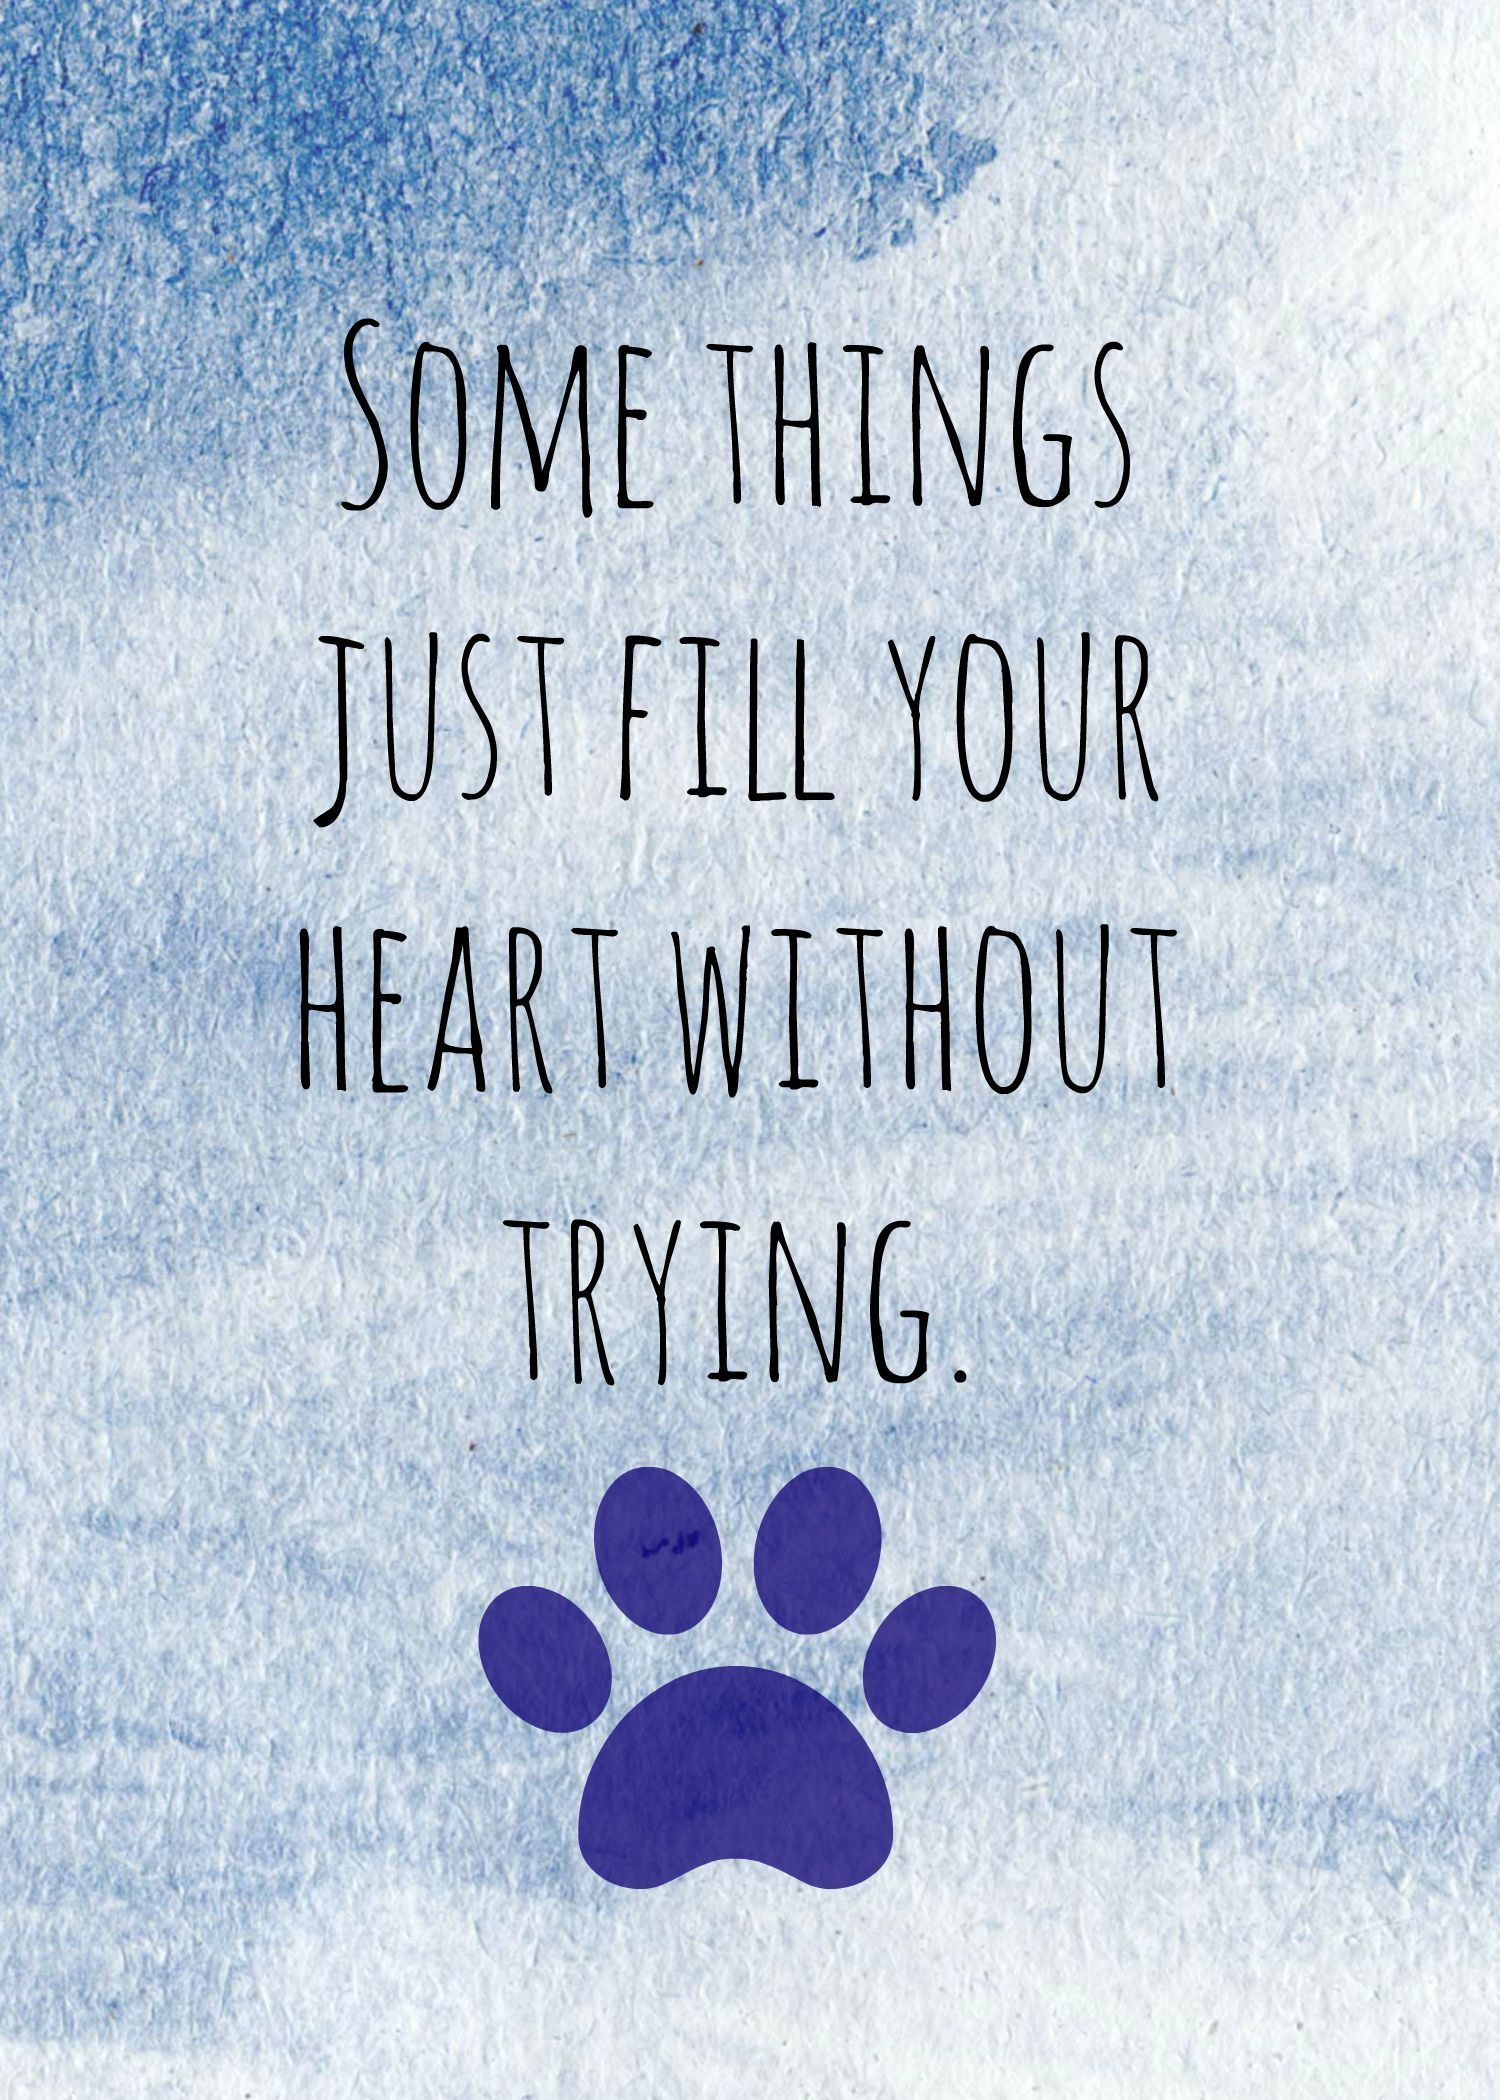 Some Things... #dog #quote #saying